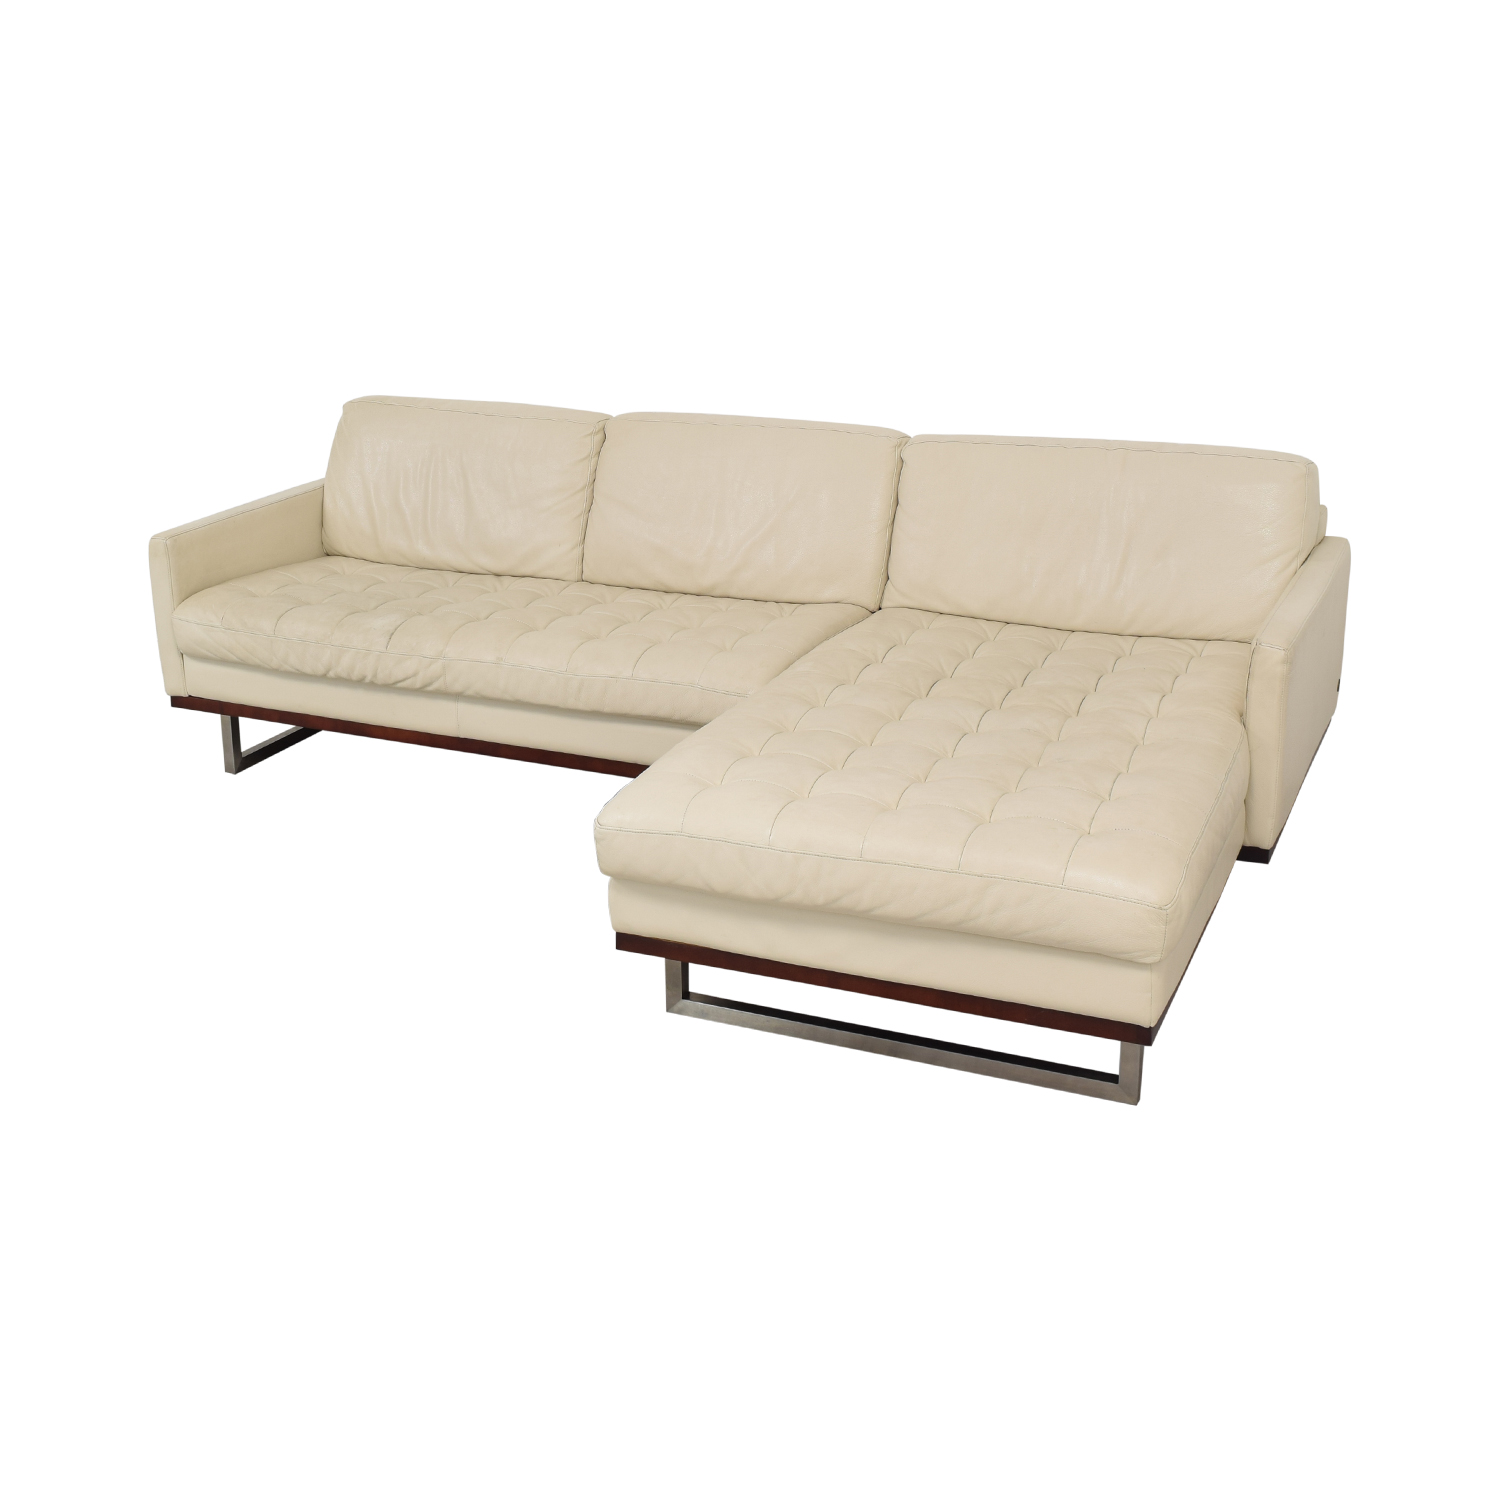 76% OFF - American Leather American Leather Chaise Sectional Sofa / Sofas